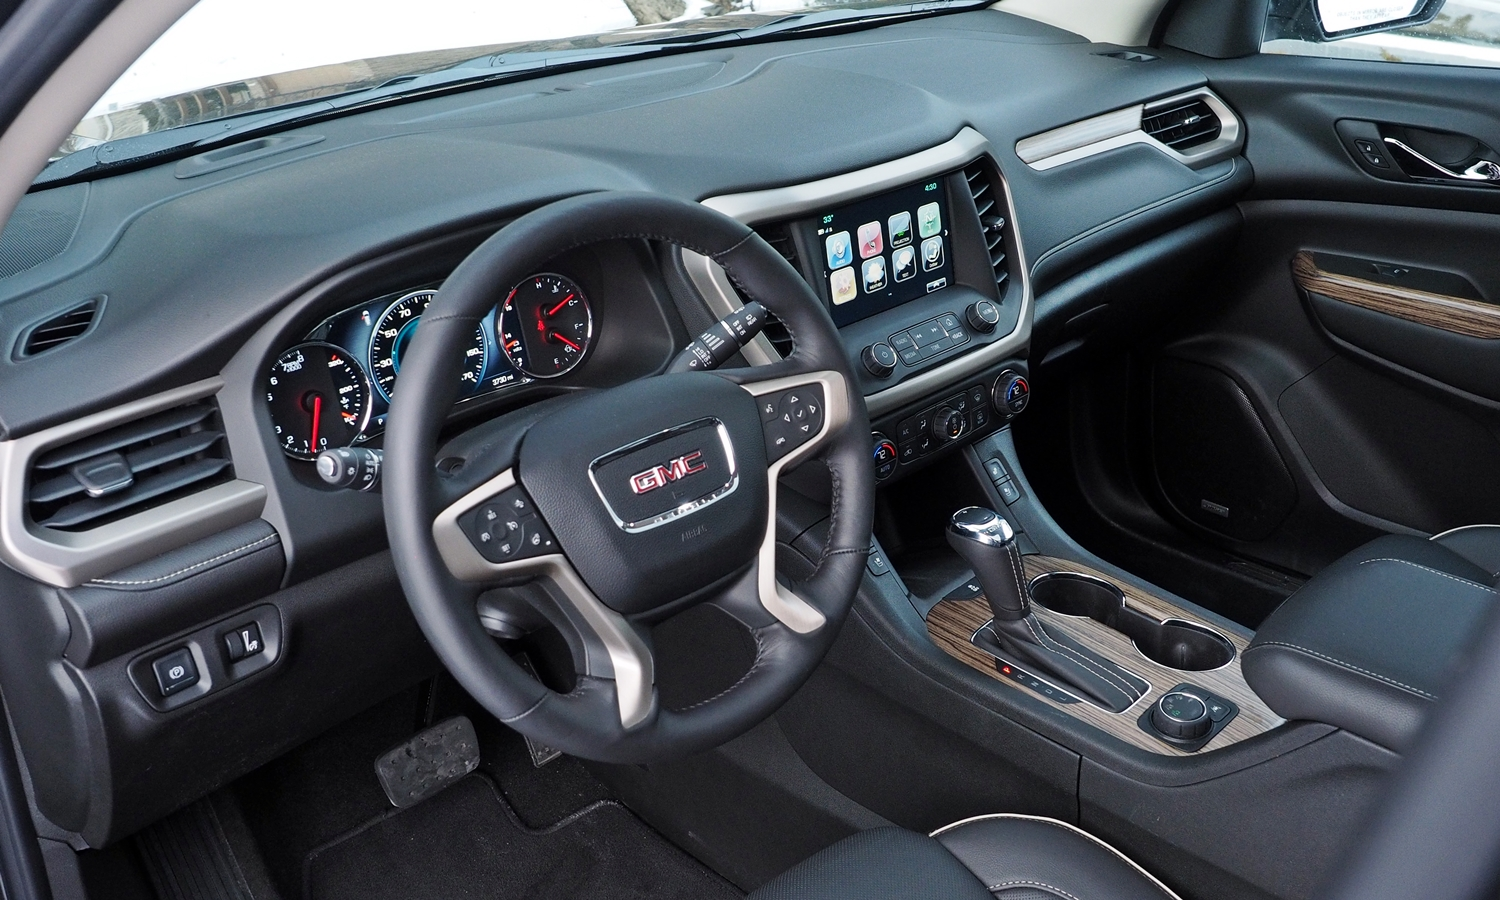 2017 Gmc Acadia Pros And Cons At Truedelta 2017 Gmc Acadia Review By Michael Karesh